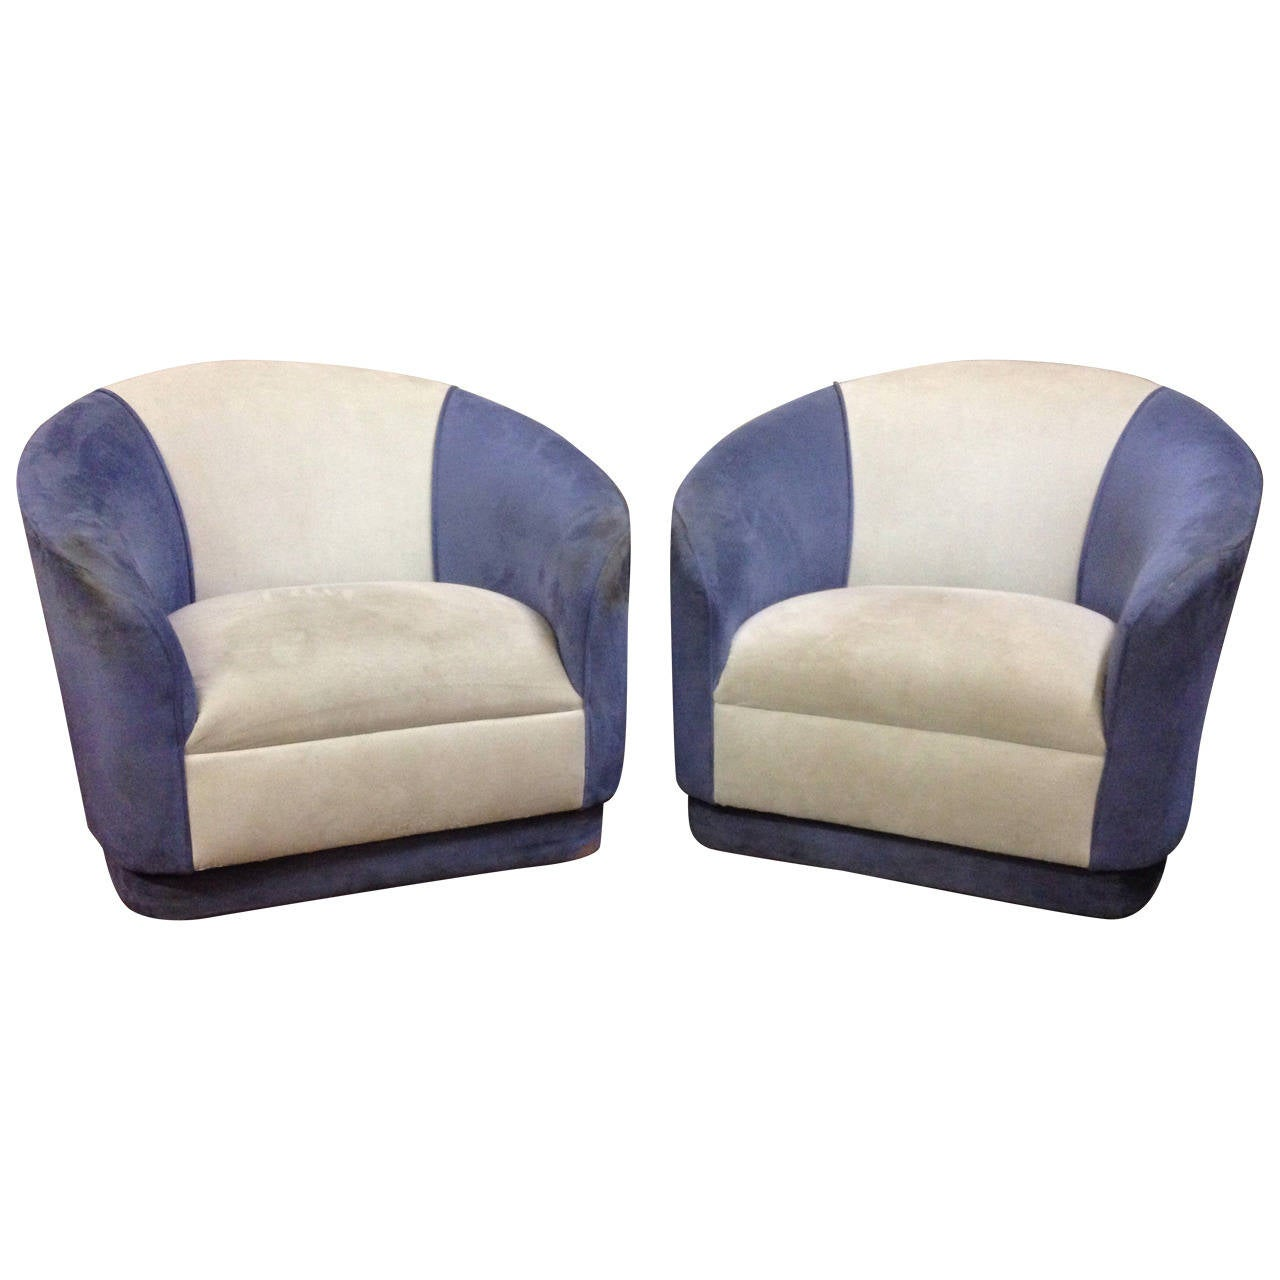 swivel chairs for sale black and white wing chair pair of barrel at 1stdibs